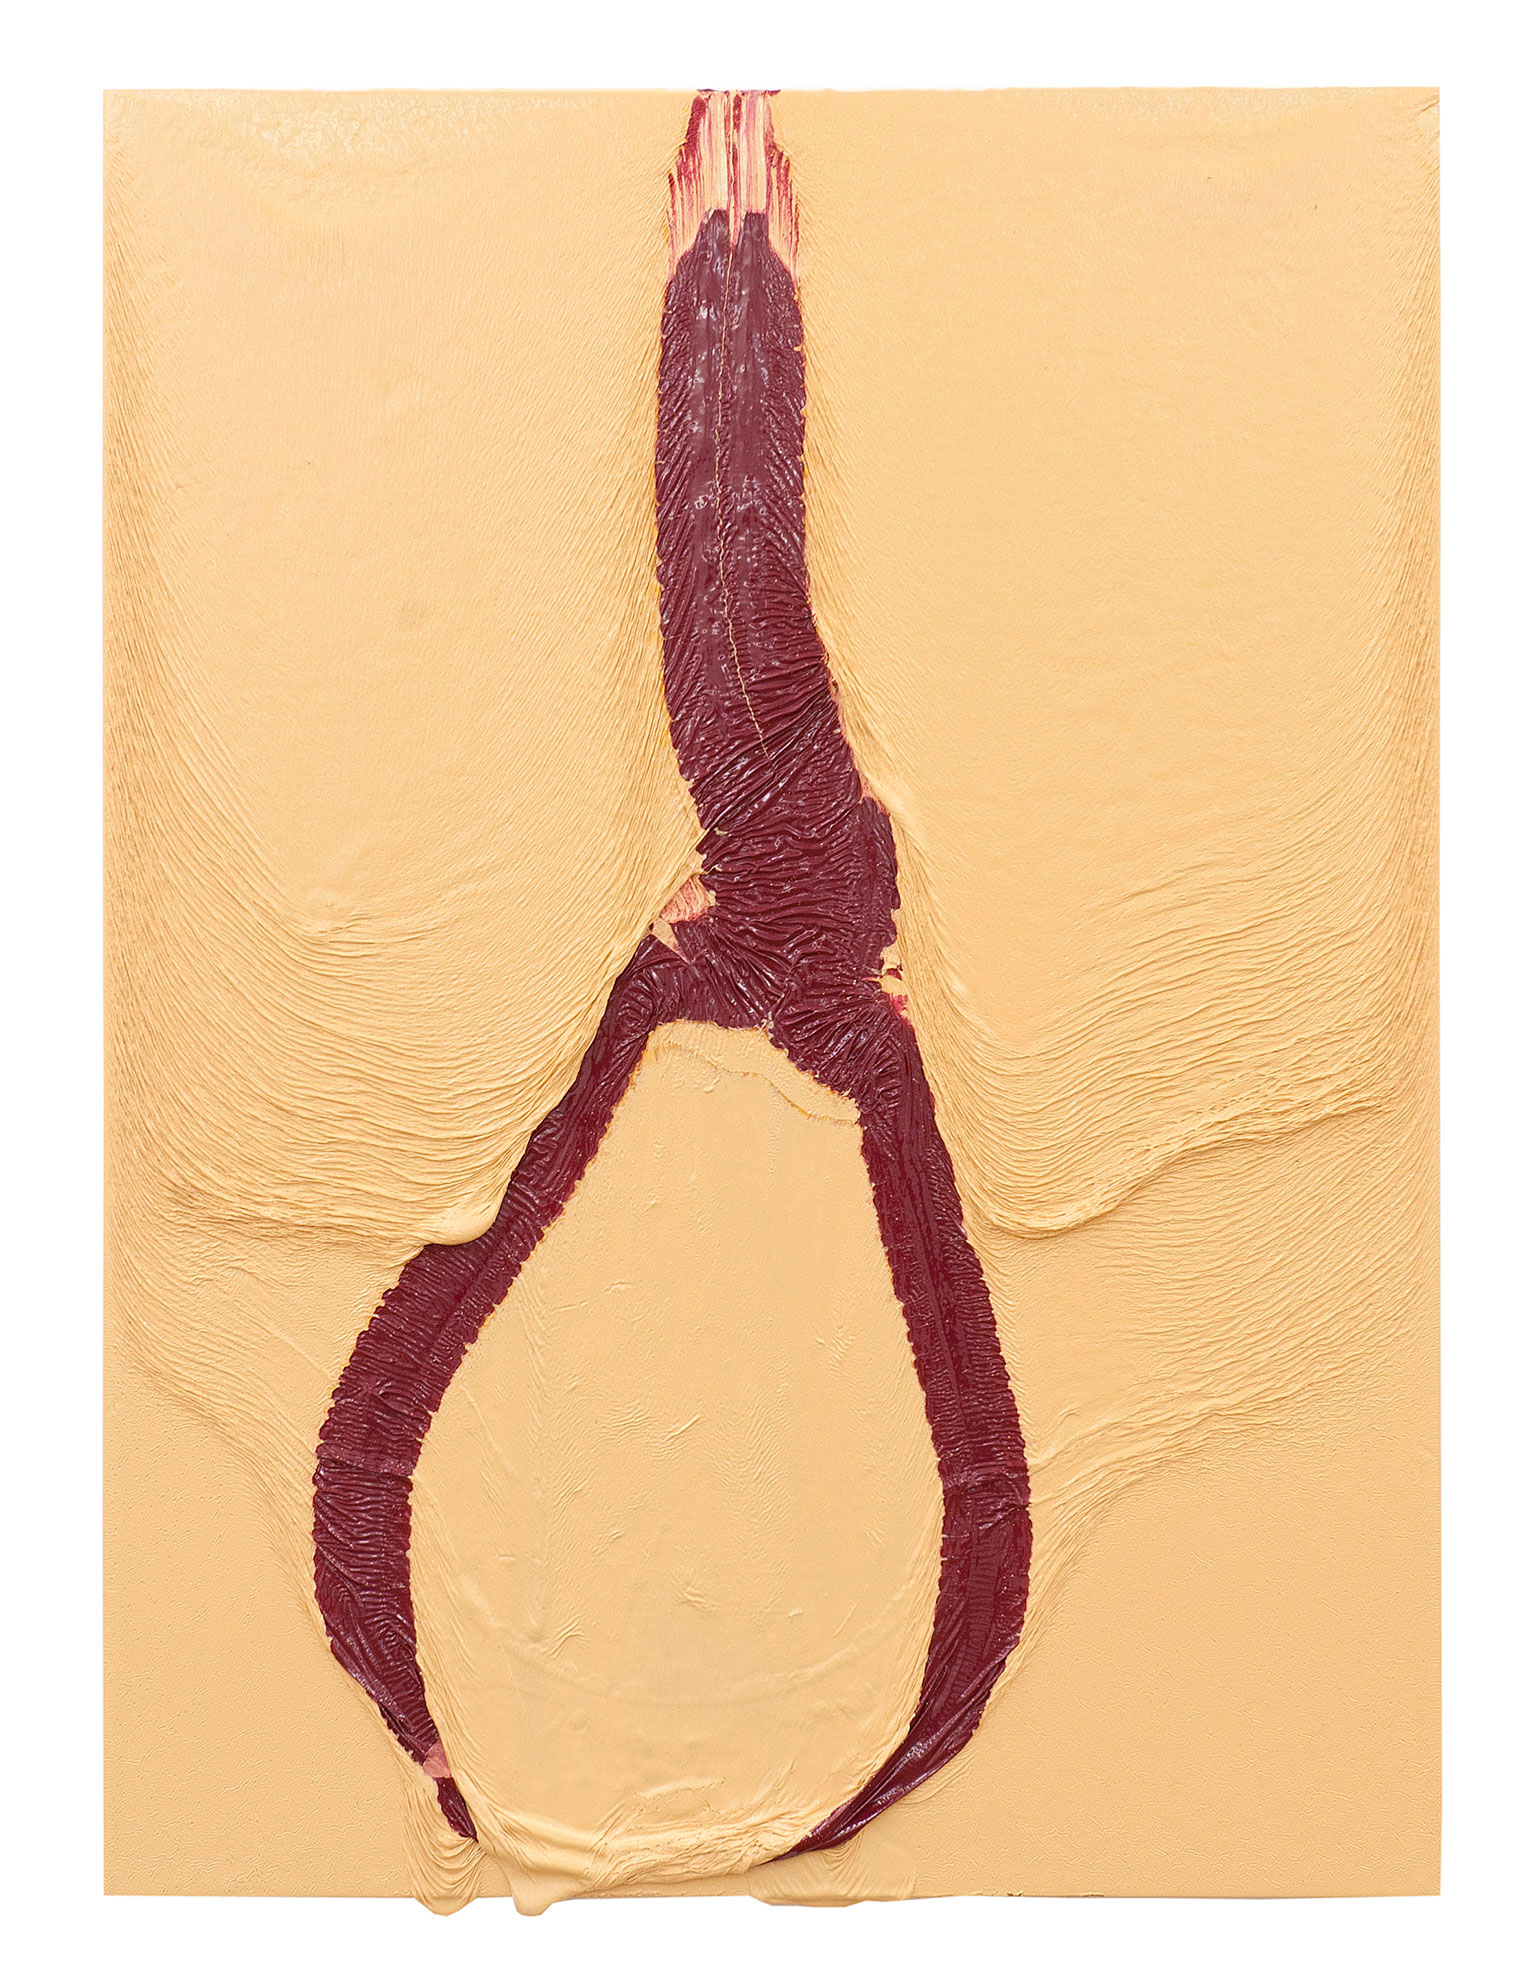 <b>Title: </b>Noose<br /><b>Year: </b>2011<br /><b>Medium: </b>Oil and gloss on MDF panel<br /><b>Size: </b>85 x 65 cm